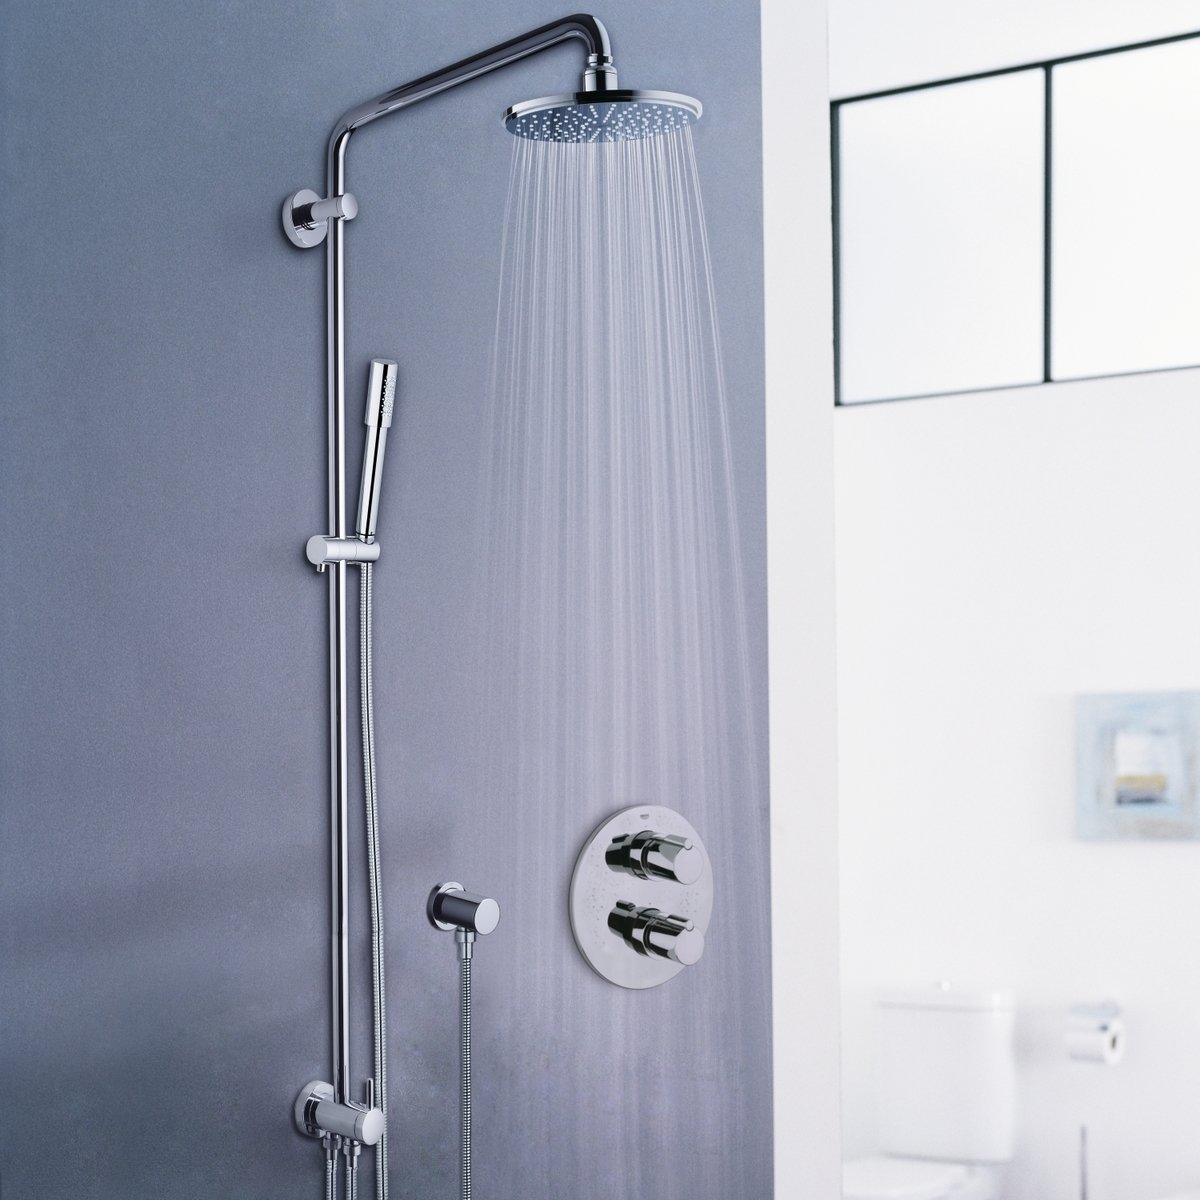 grohe rainshower modern douchesysteem met omstelling met hoofddouche en sena handdouche chroom. Black Bedroom Furniture Sets. Home Design Ideas